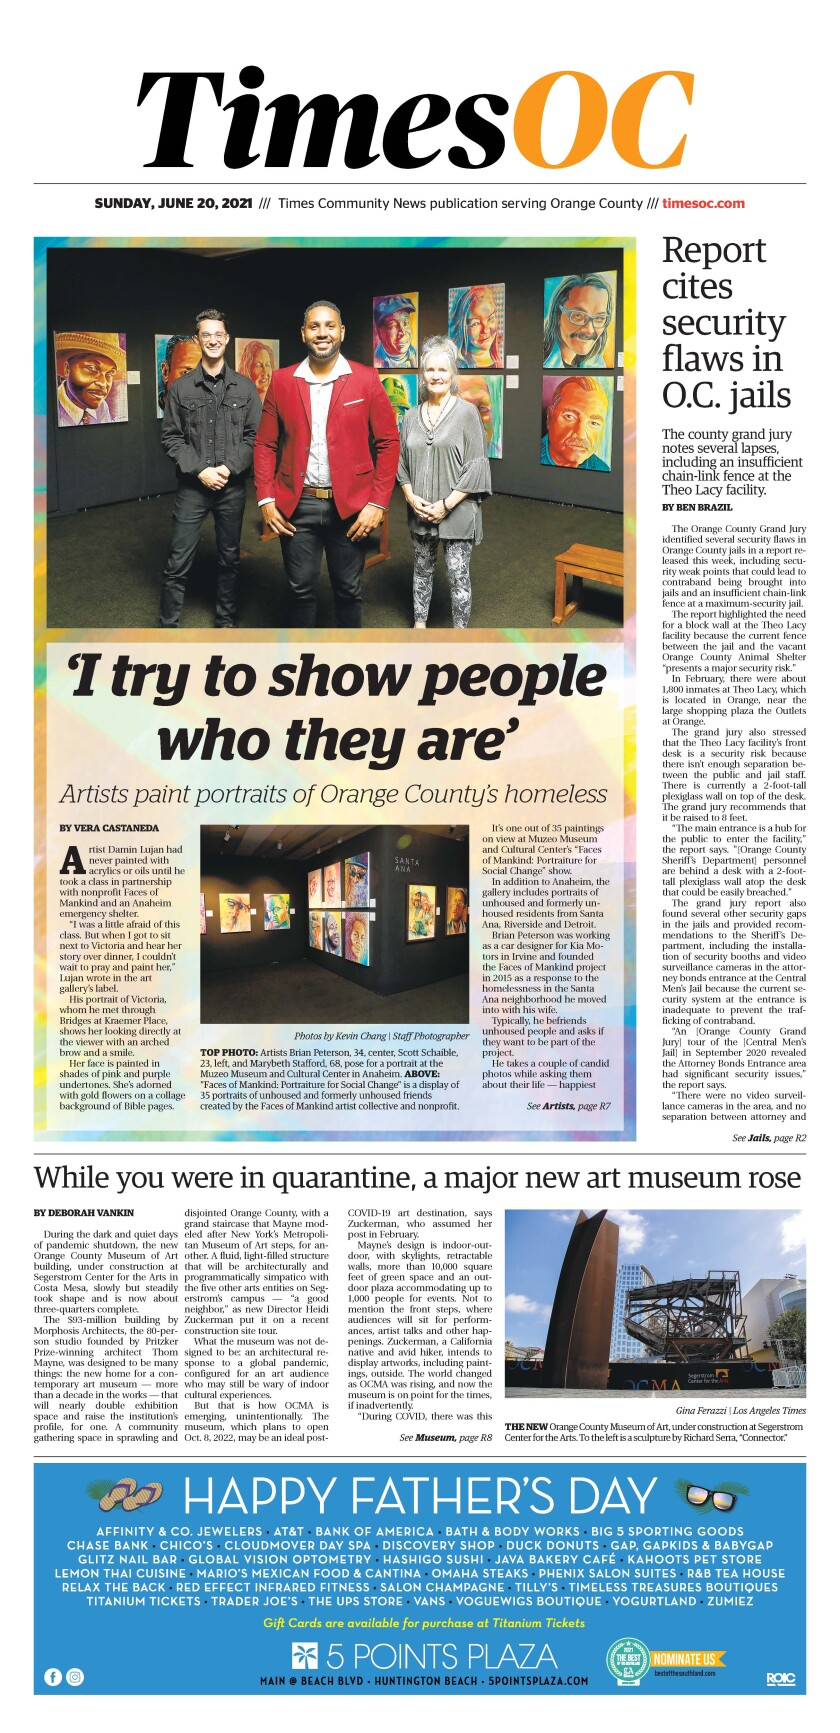 Front page of Times OC e-newspaper for Sunday, June 20, 2021.